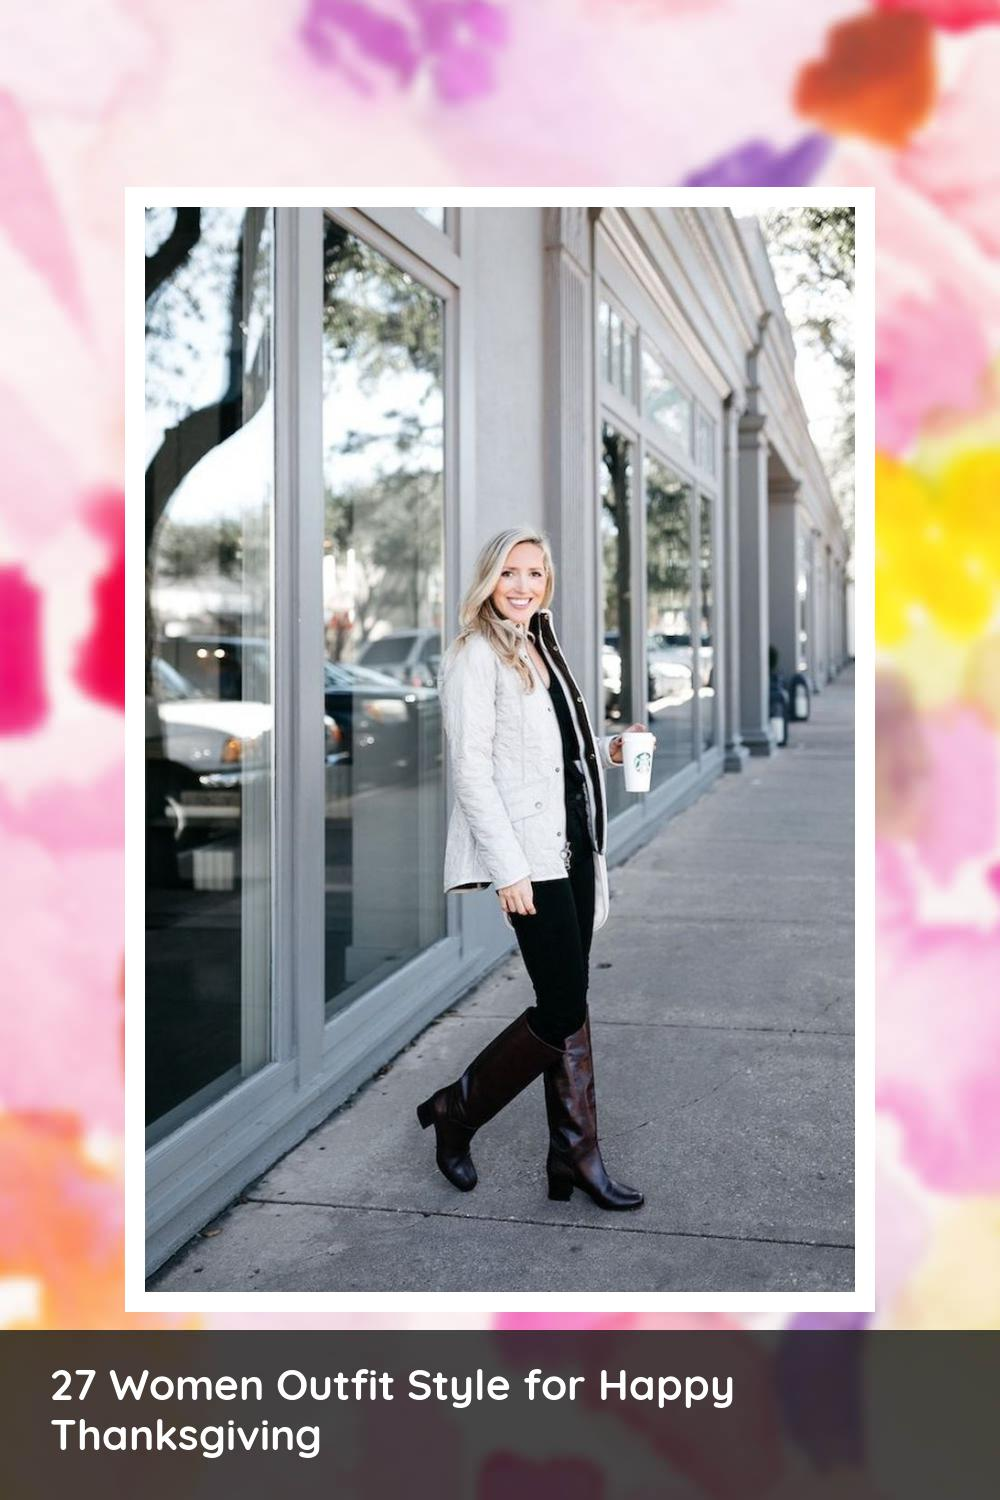 27 Women Outfit Style for Happy Thanksgiving 2